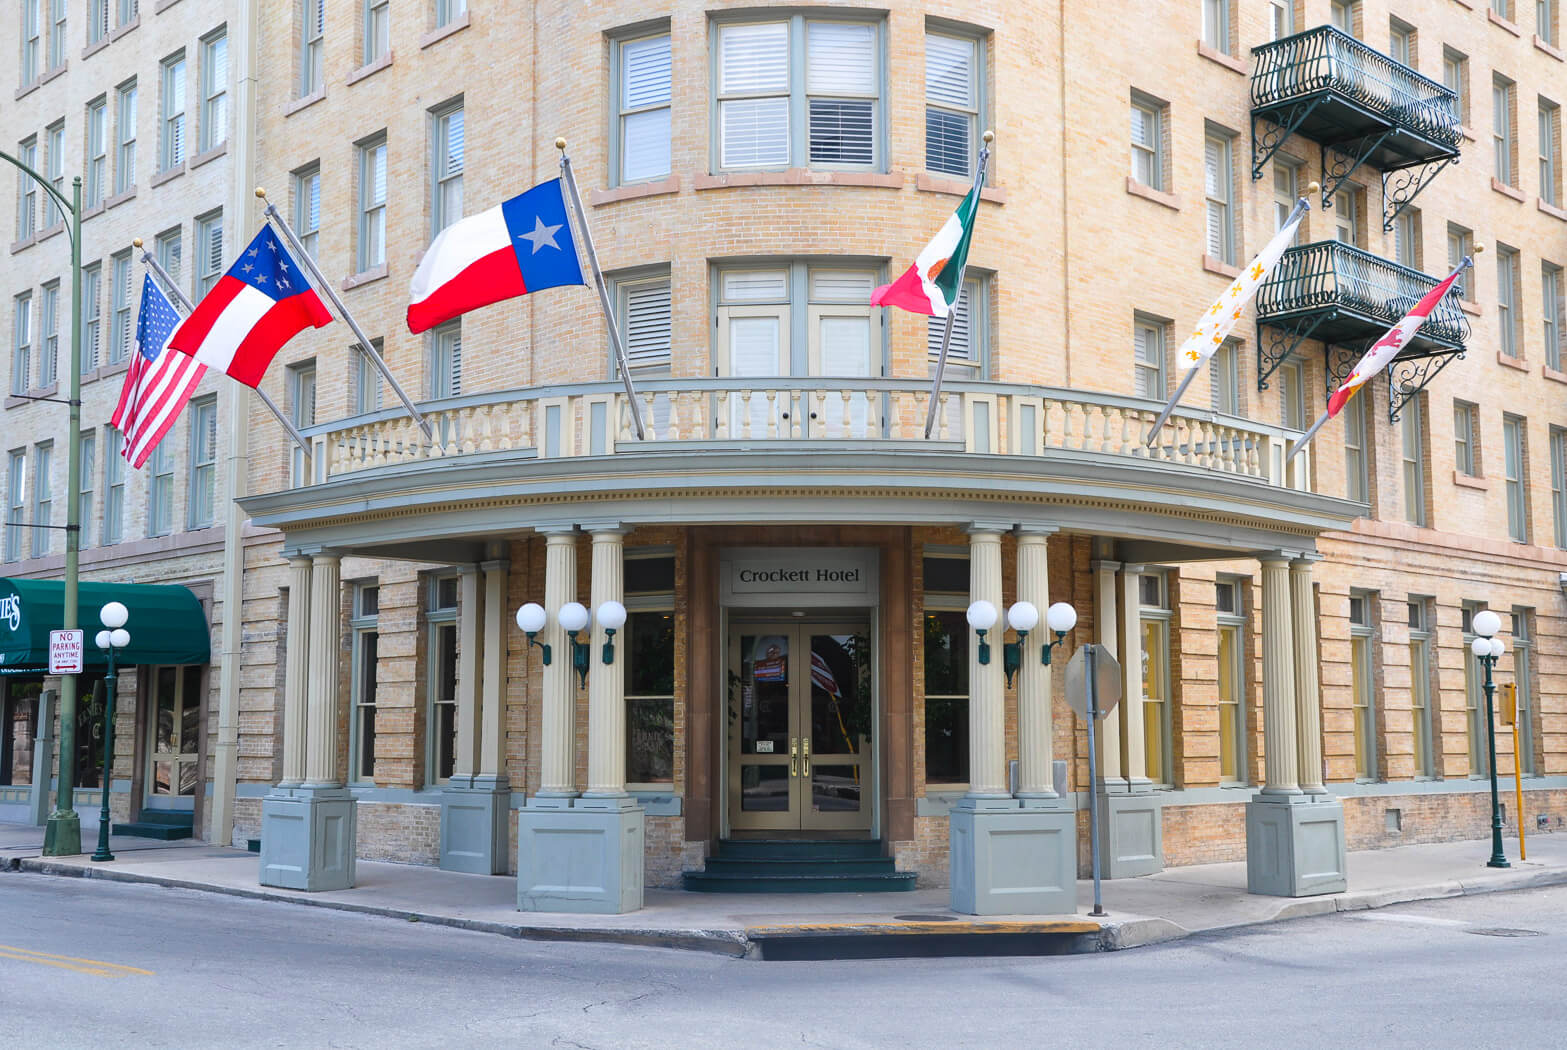 San Antonio Hotels | View Our Photo Gallery | The Crockett Hotel